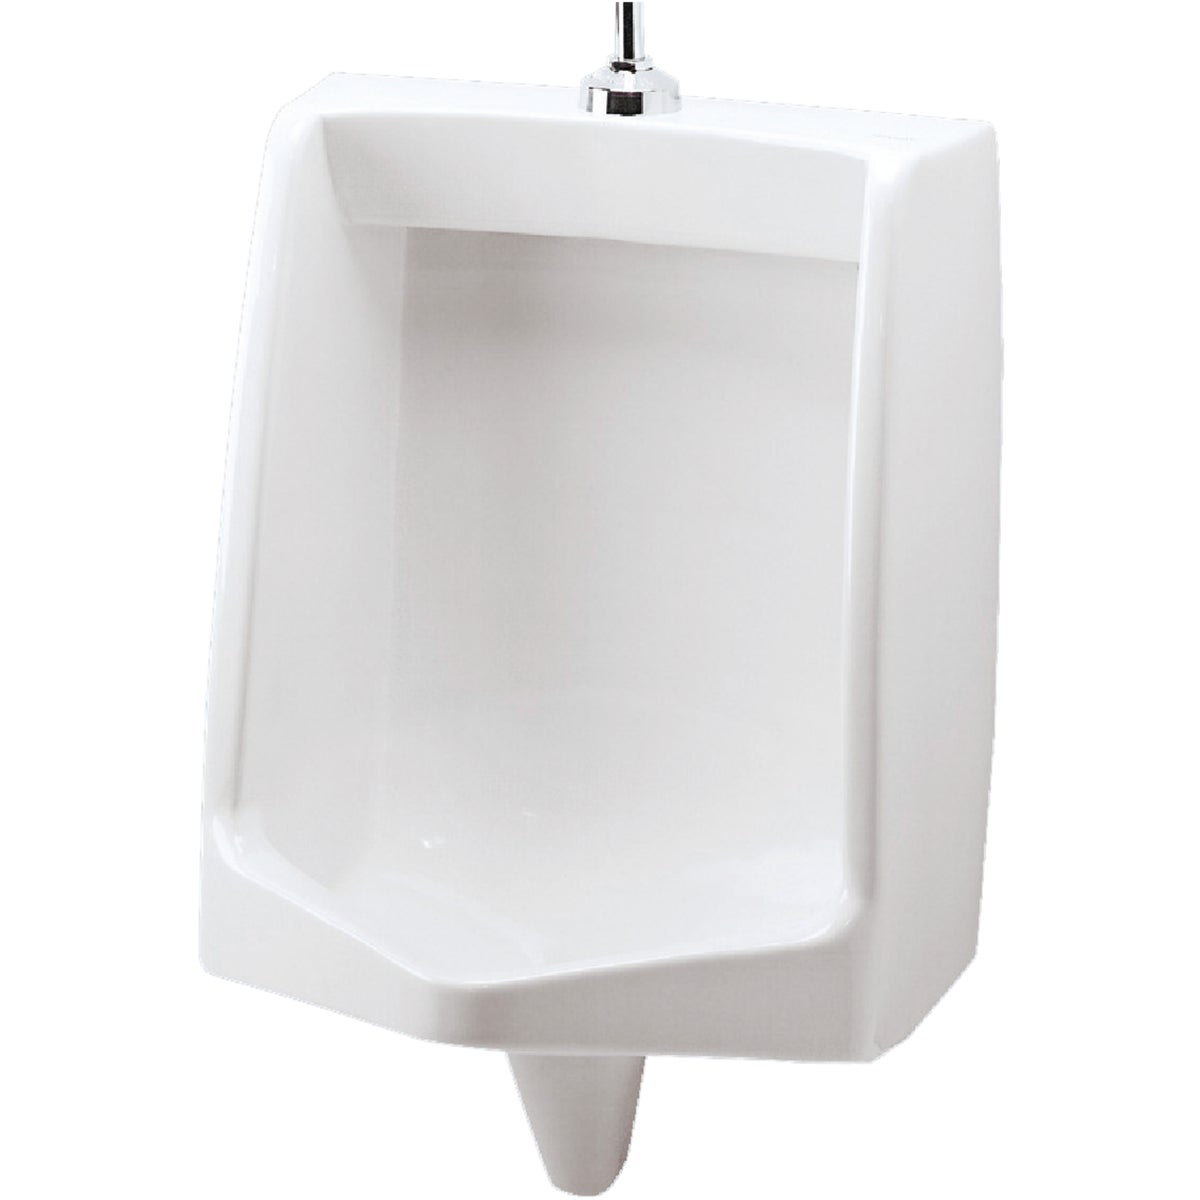 WHITE 0.5 GPF URINAL